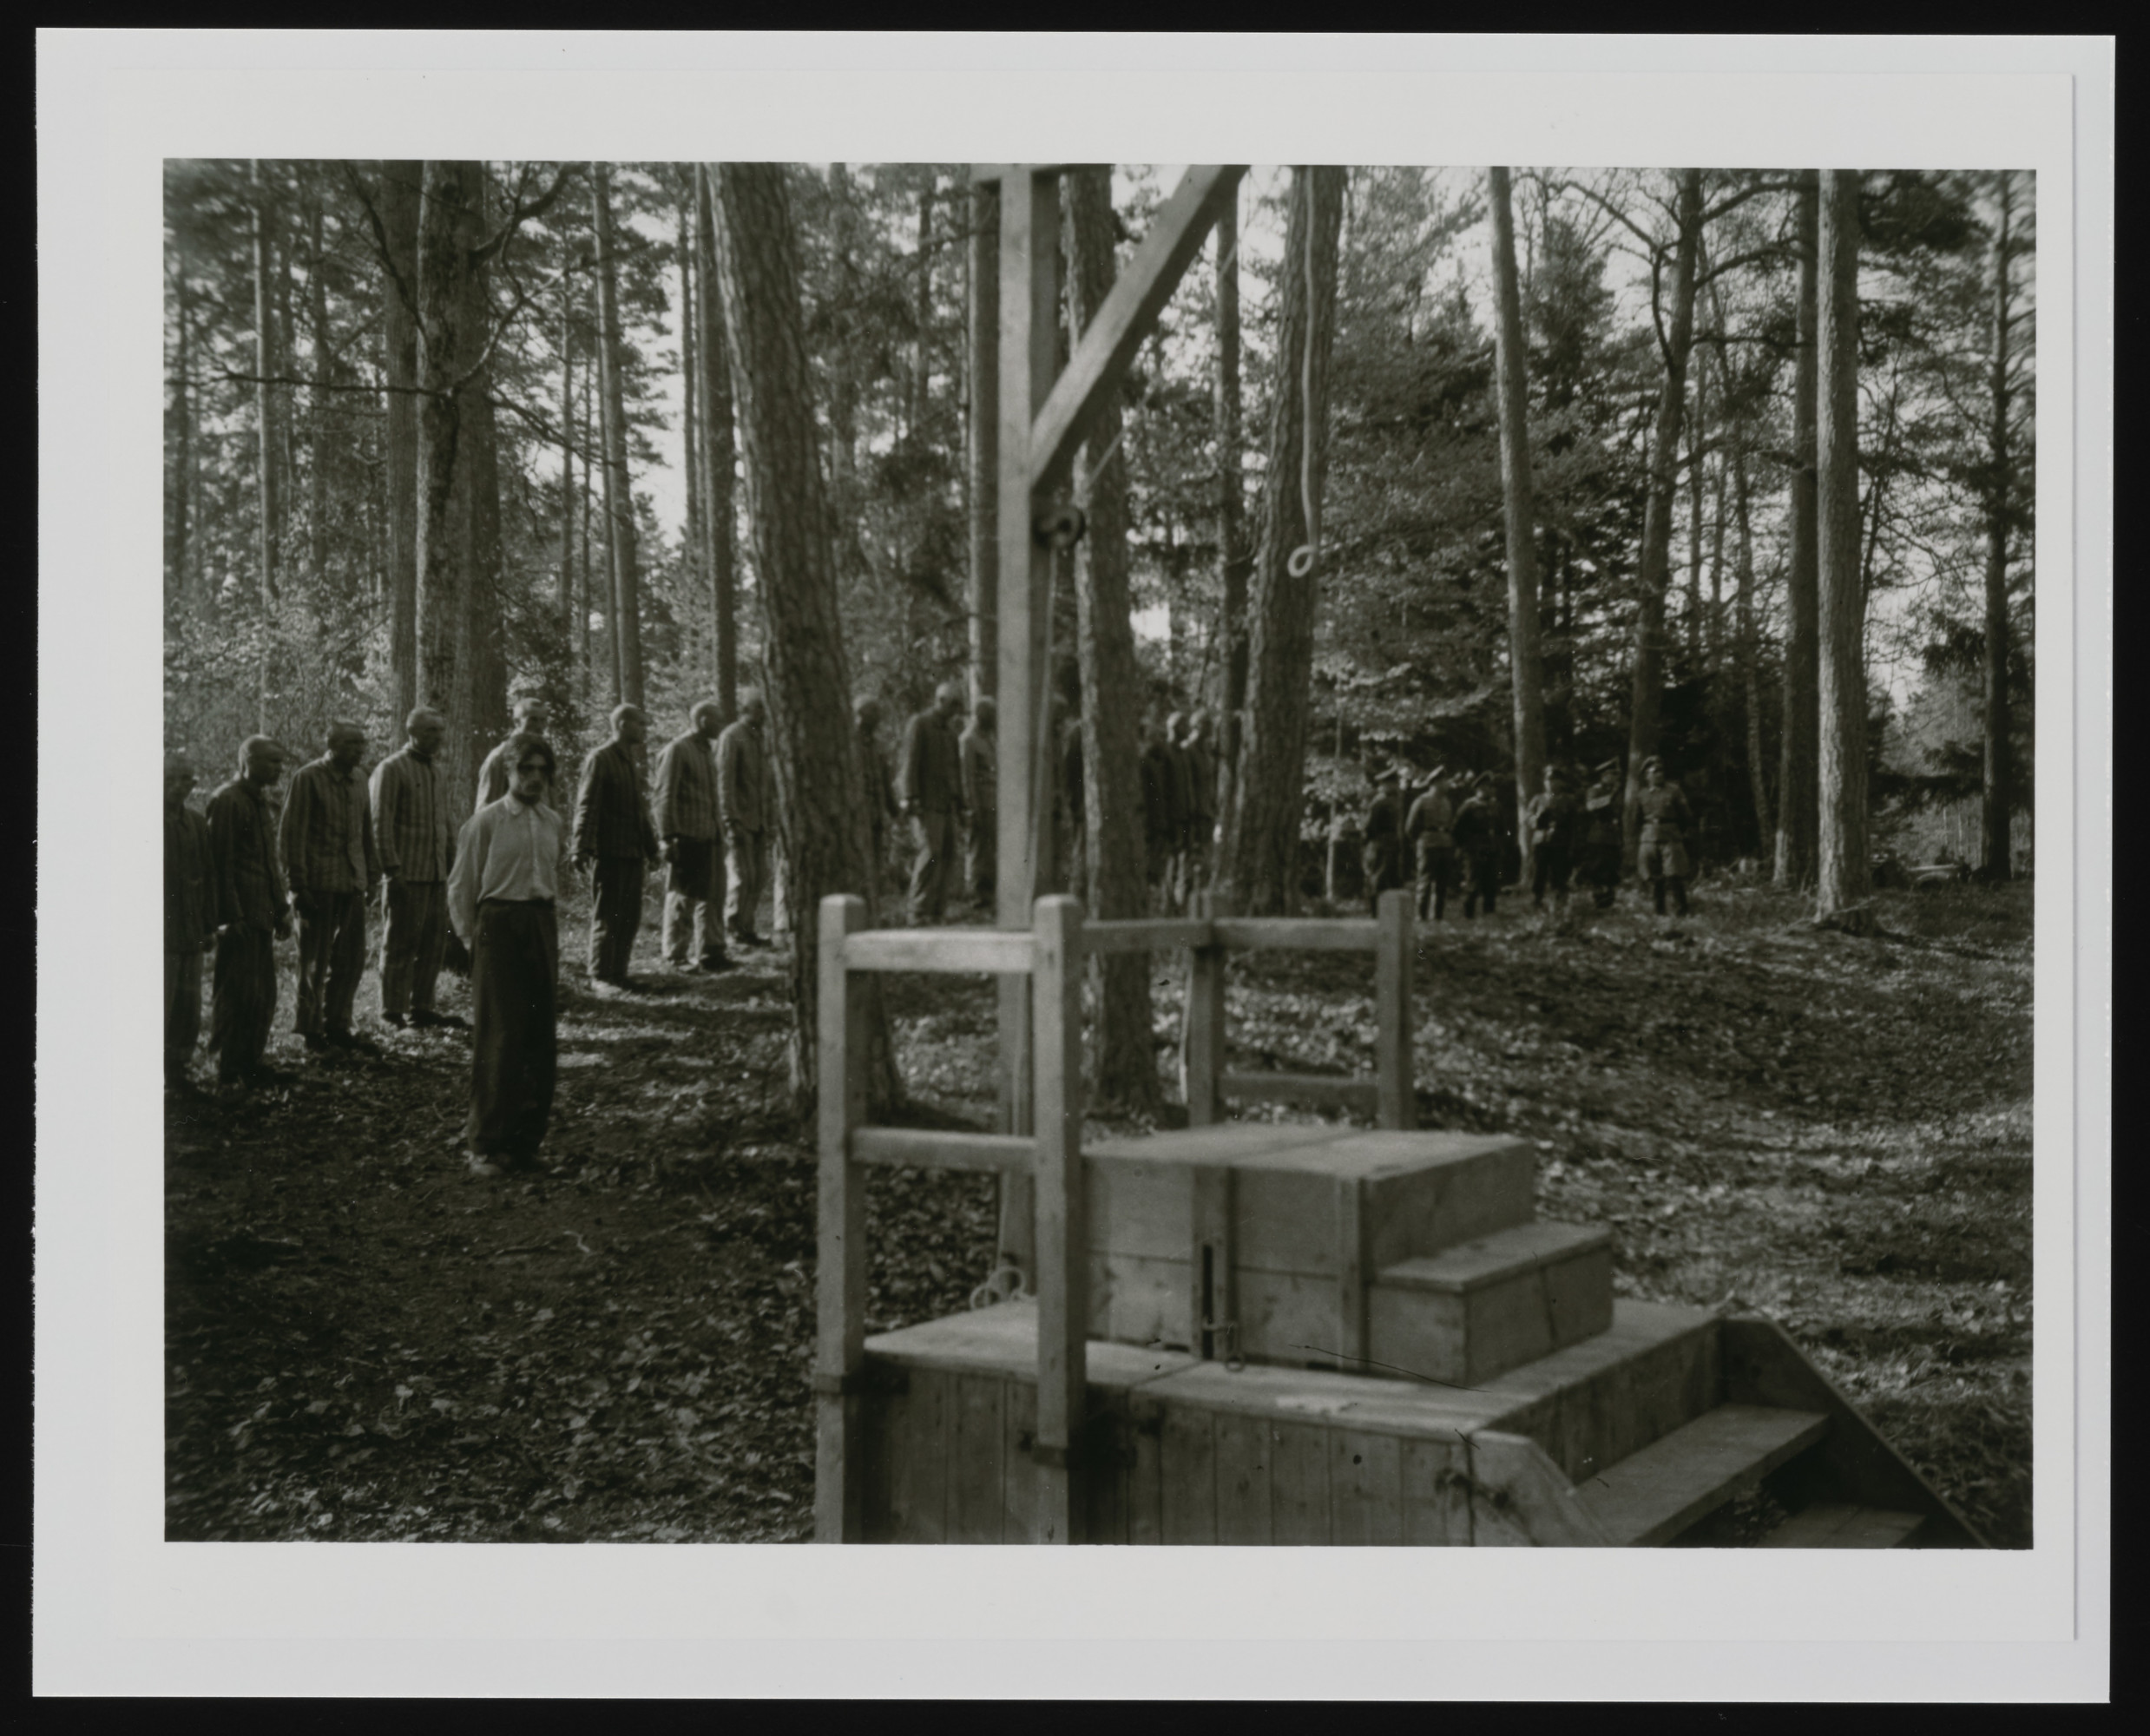 The execution of prisoners in the forest near Buchenwald concentration camp.